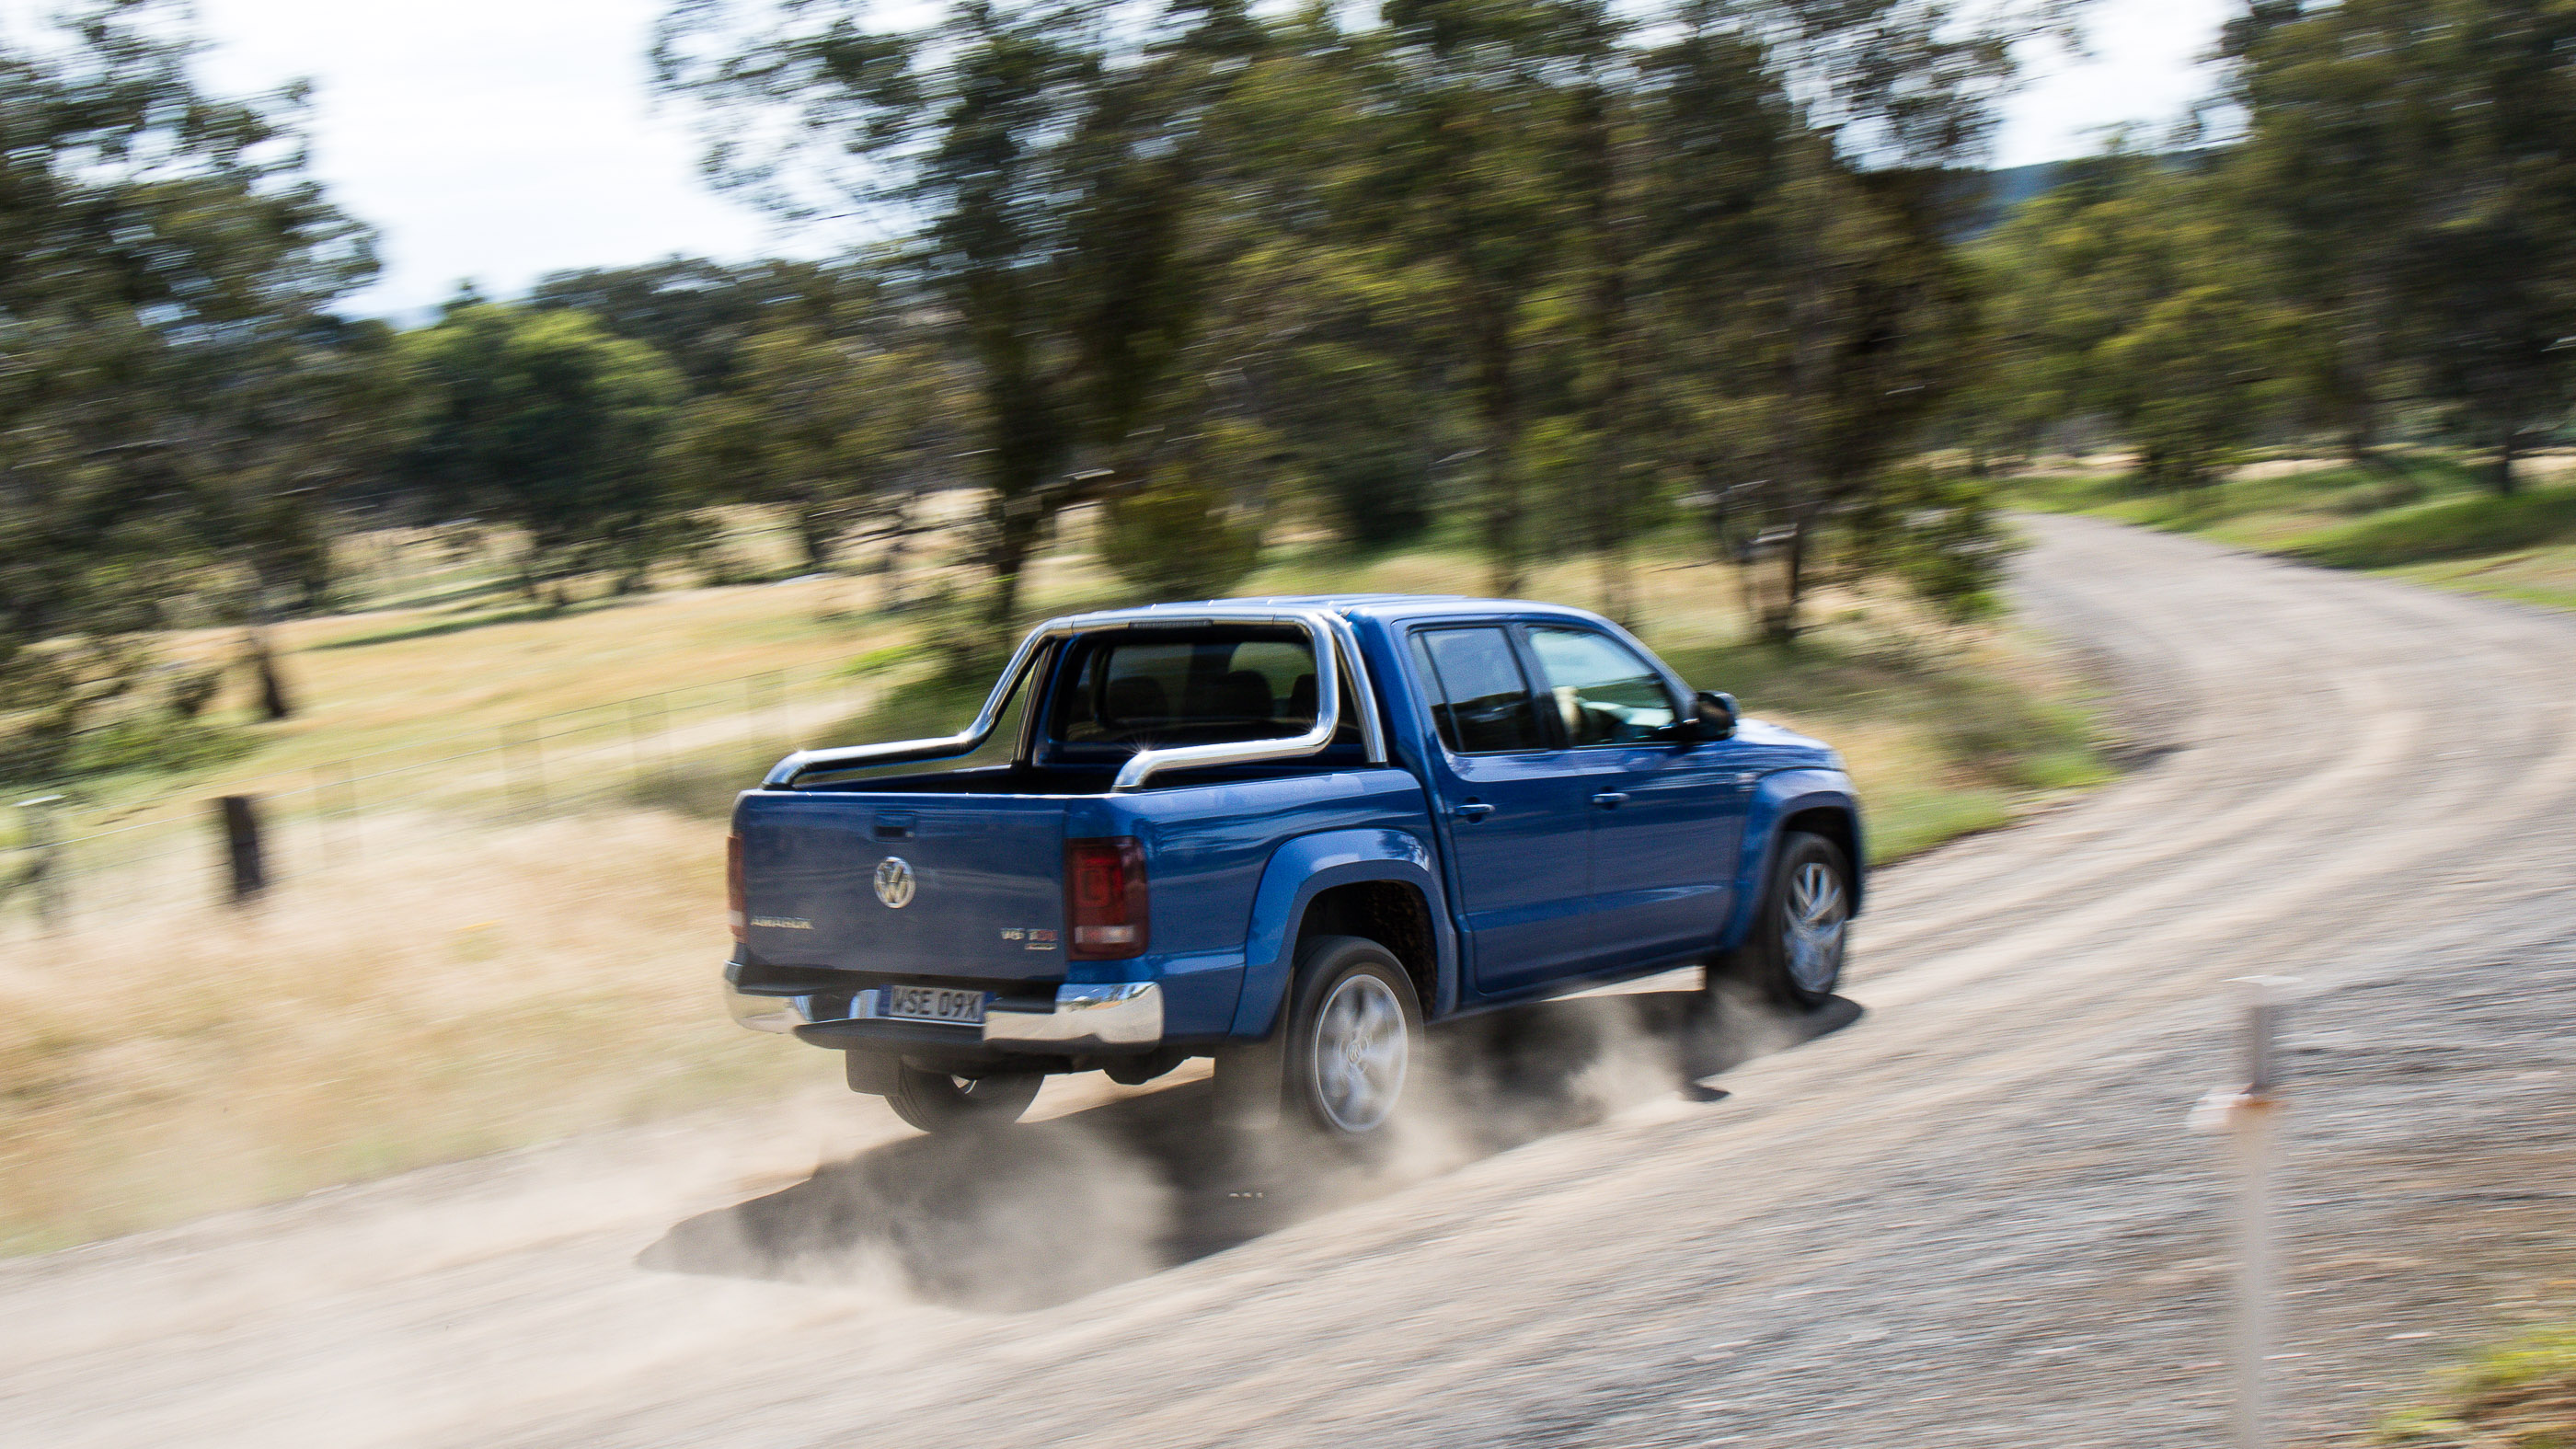 Volkswagen Amarok photo 171735